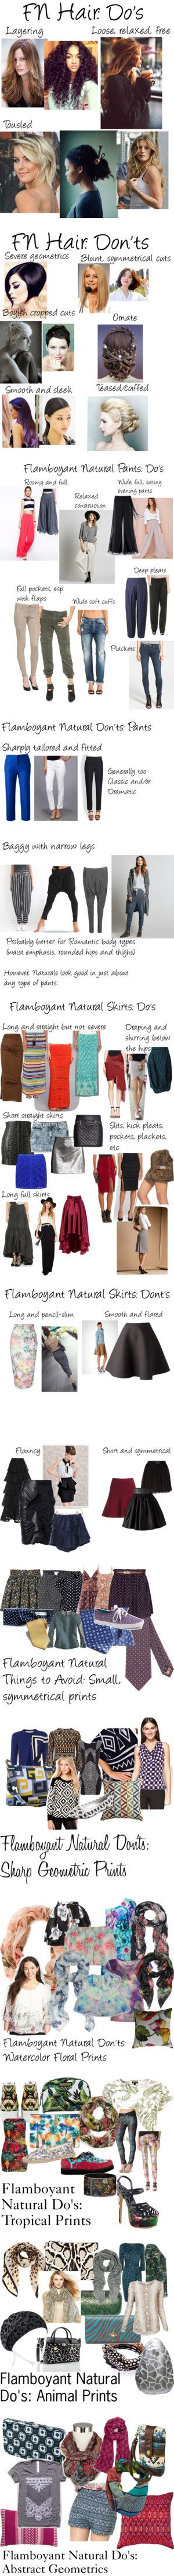 Kibbe Flamboyant Natural by furiana on Polyvore featuring Mode, ASOS, De Philo, Free People, 3.1 Phillip Lim, Oska, 7 For All Mankind, rag & bone/JEAN, DWP and Current/Elliott